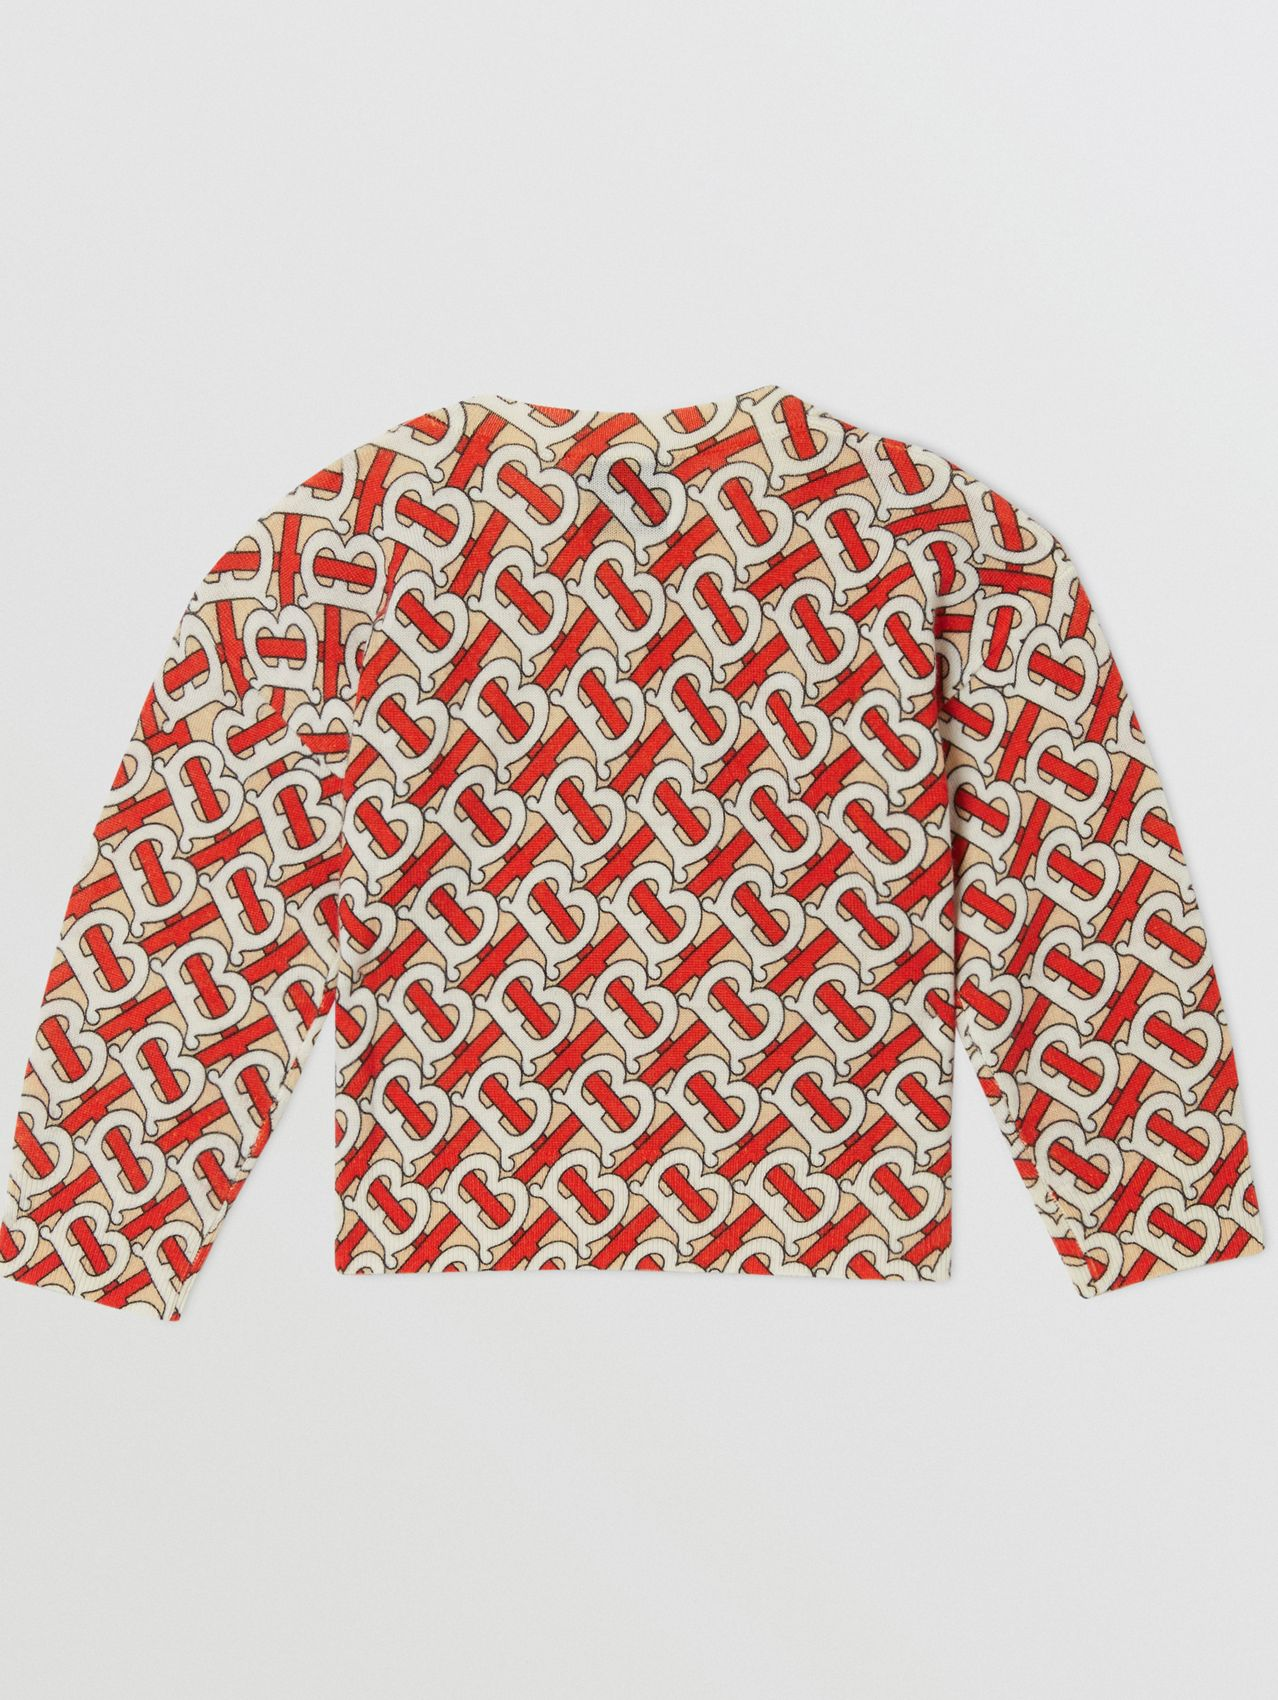 Monogram Print Merino Wool Sweater (Vermilion Red)